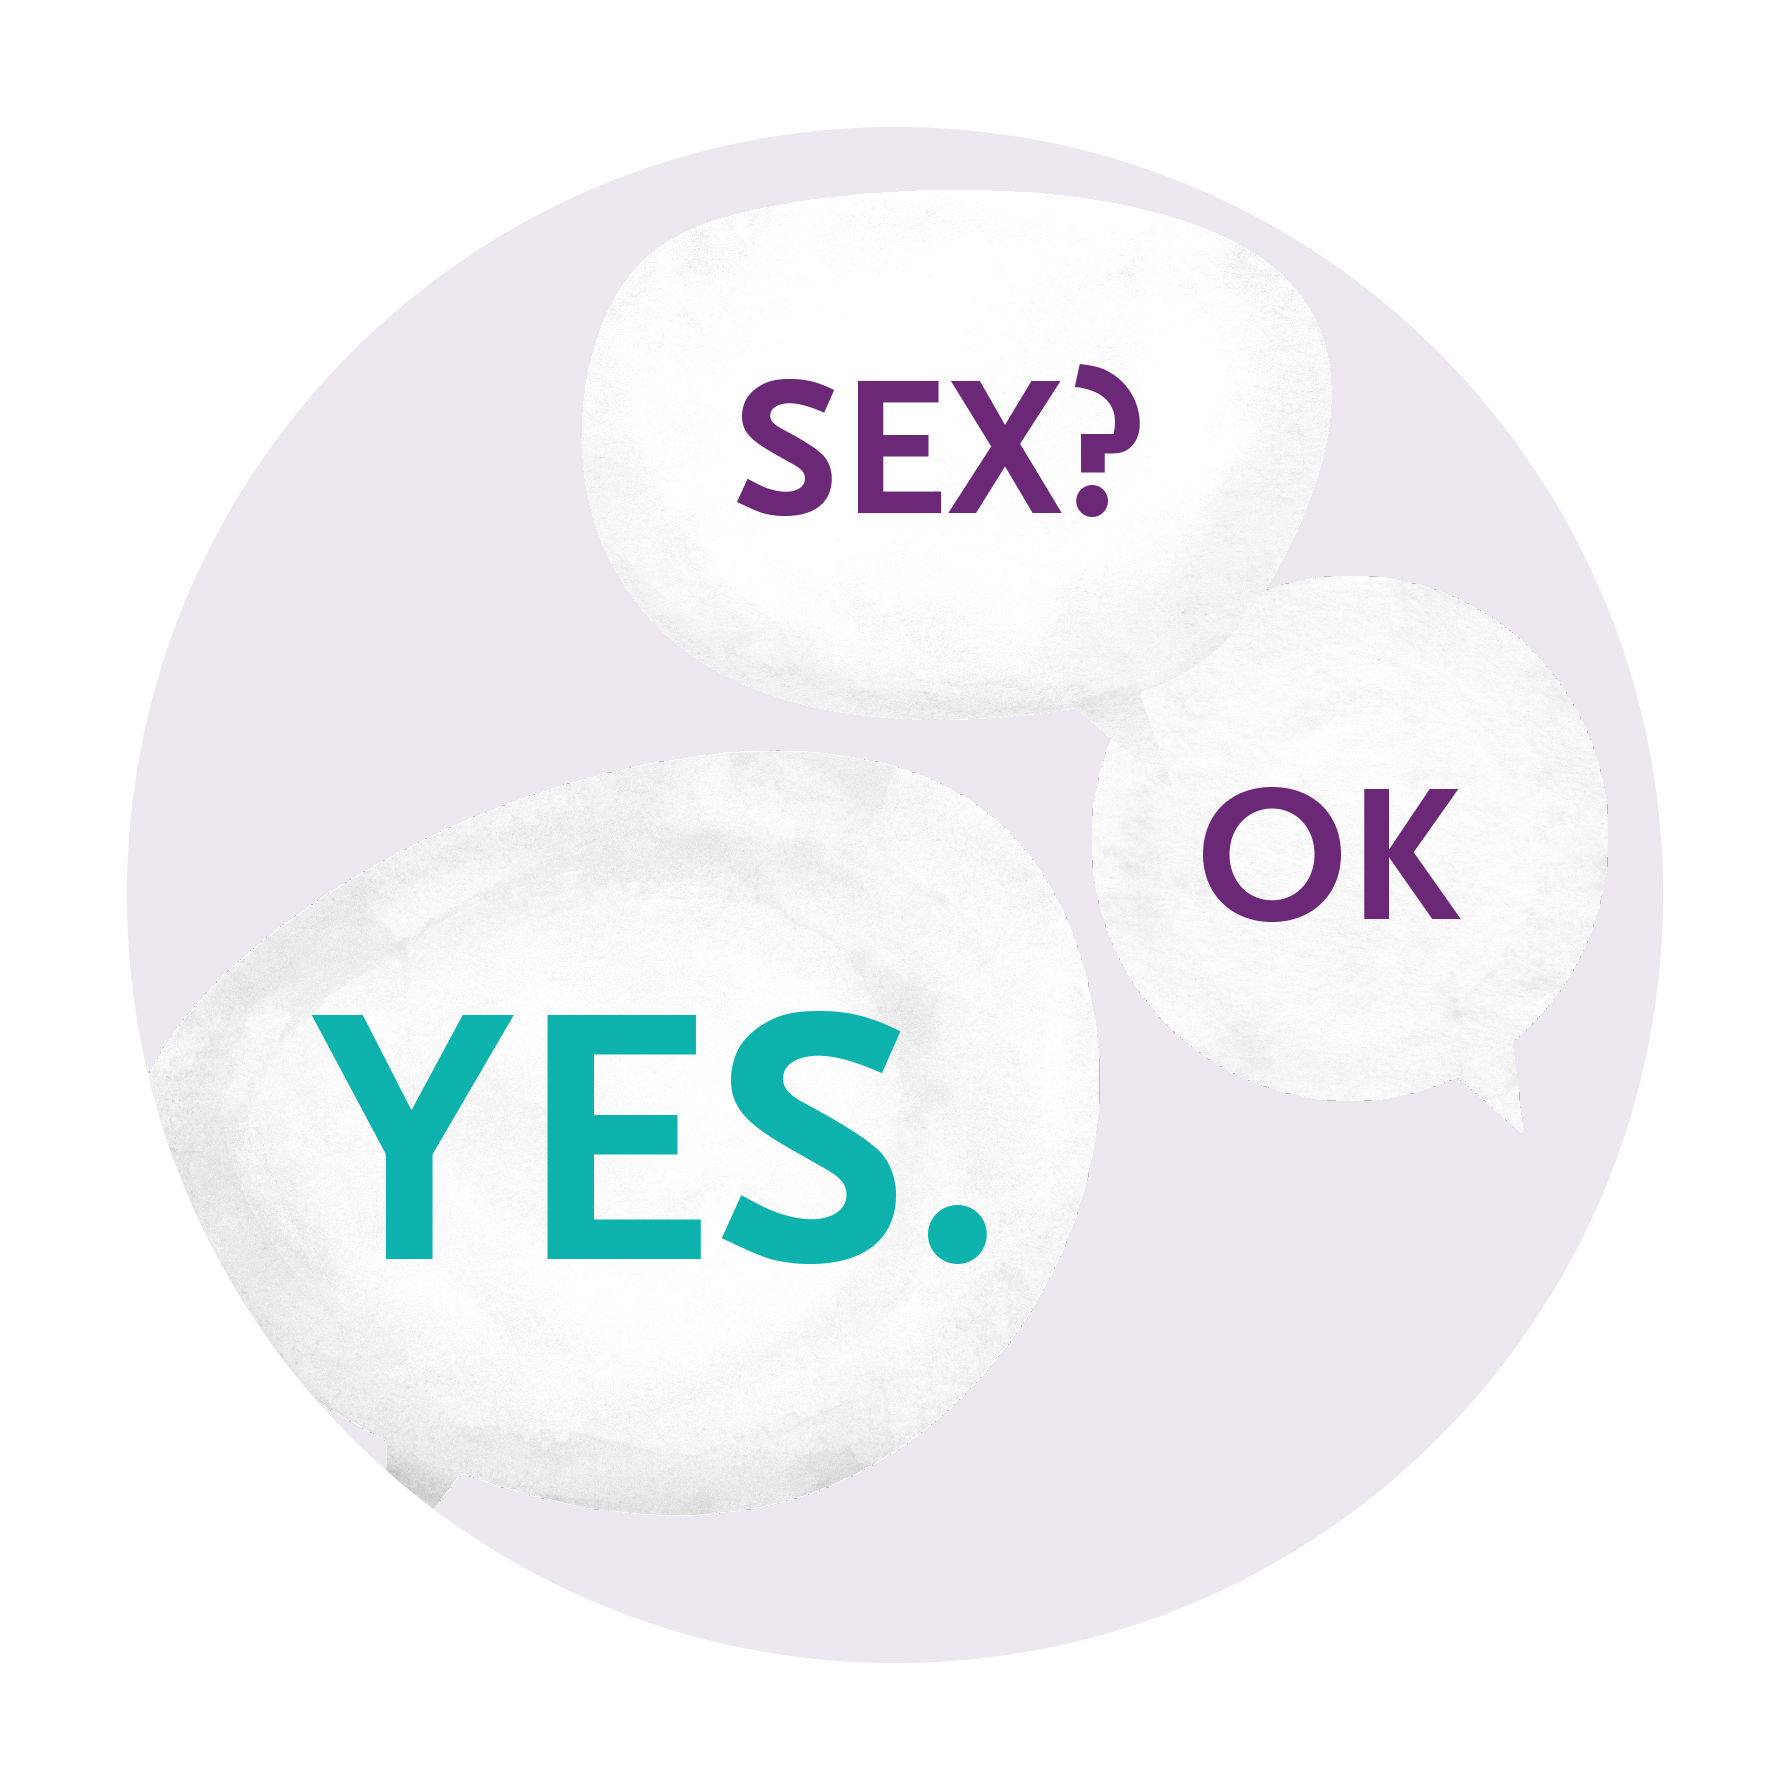 Sex? YES. OK